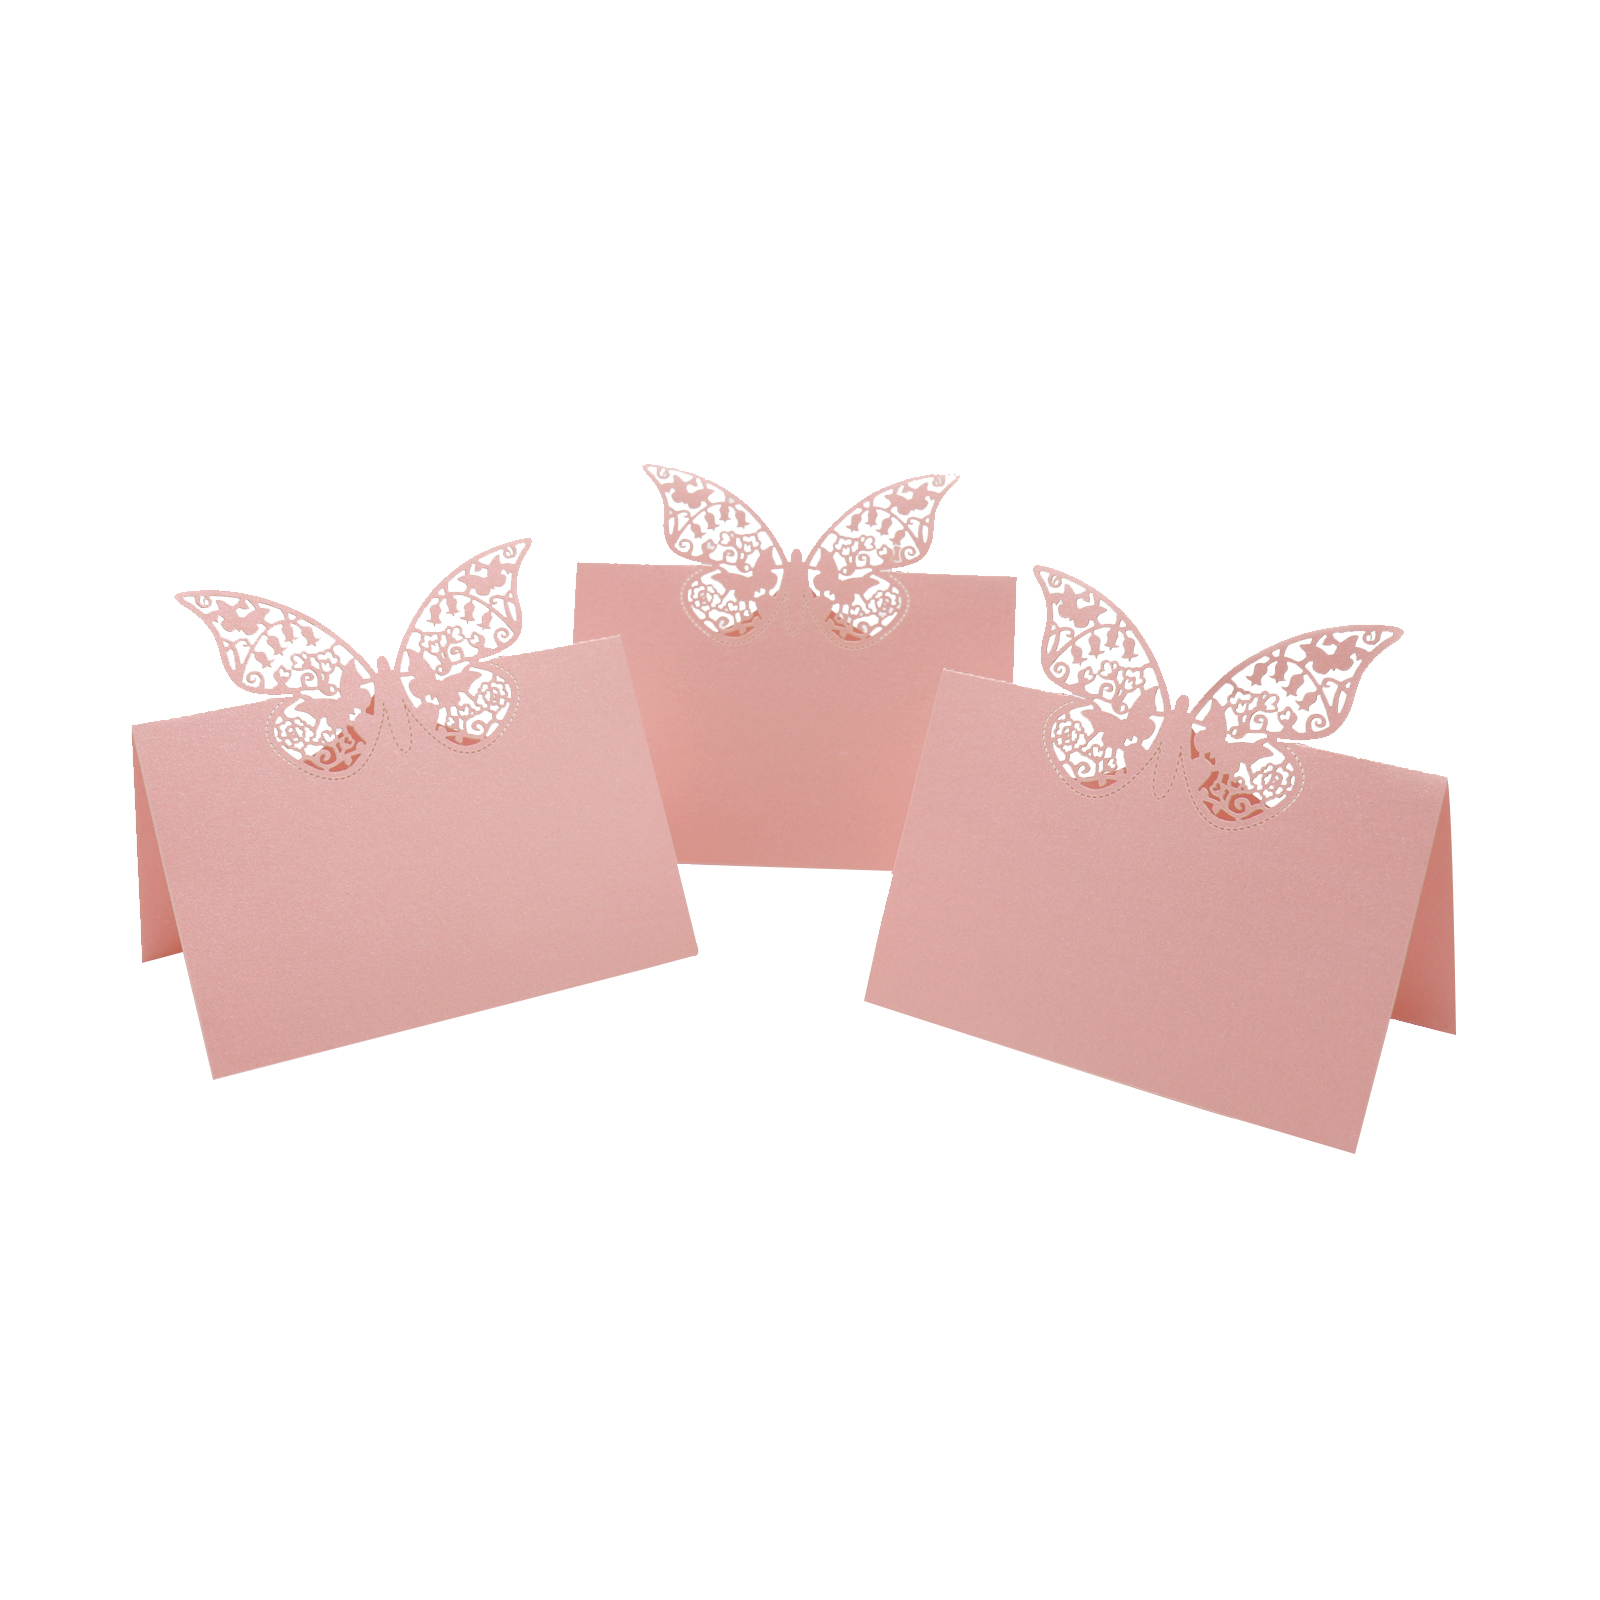 10pcs Wedding Table Card Banquet Name Place Cards Restaurant Table Number Cards Butterfly Shape Invitation Cards Wholesale